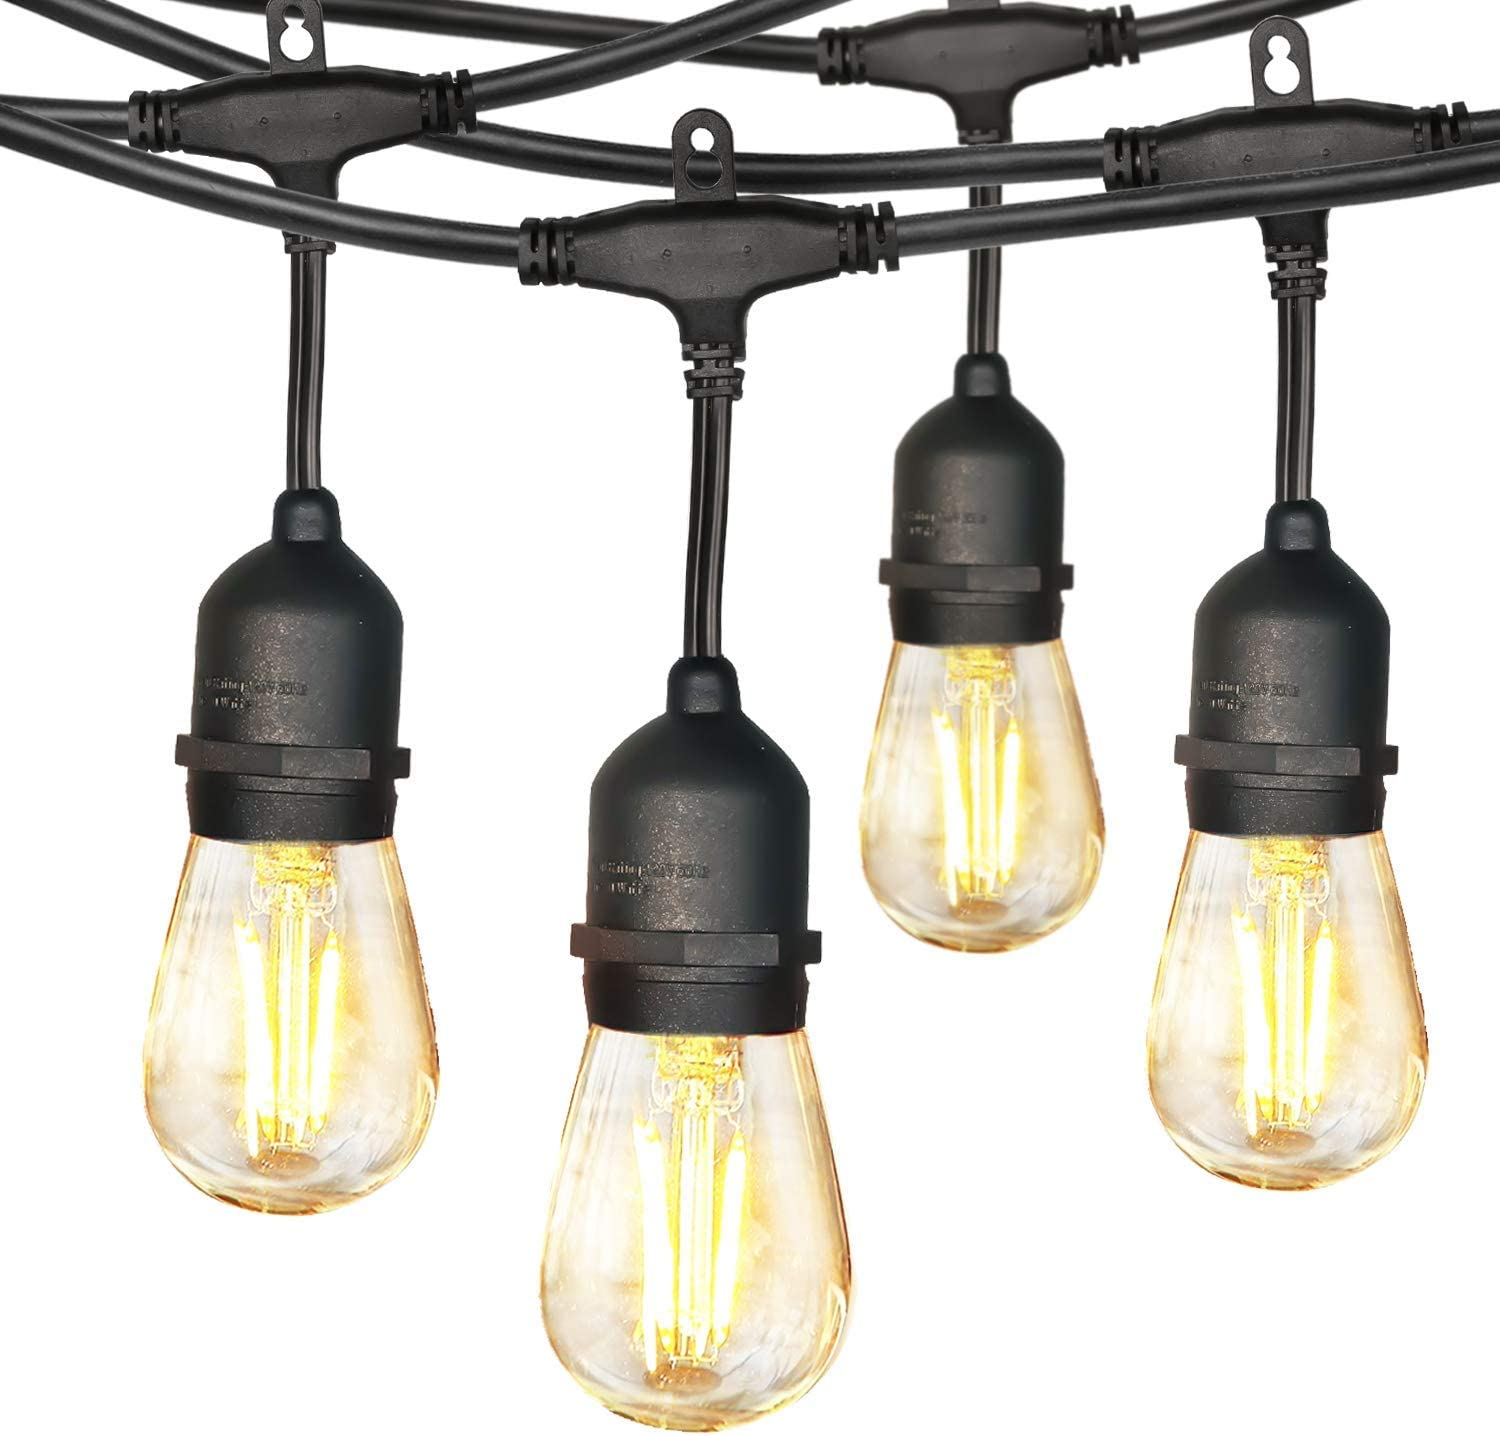 hykolity 24FT LED Outdoor String Lights with 8 x 2W Vintage Edison Bulbs(1 Spare), Connectable Ambience Backyard Hanging Patio Lights for Bistro Porch Pergola Gazebo Balcony Party Decor